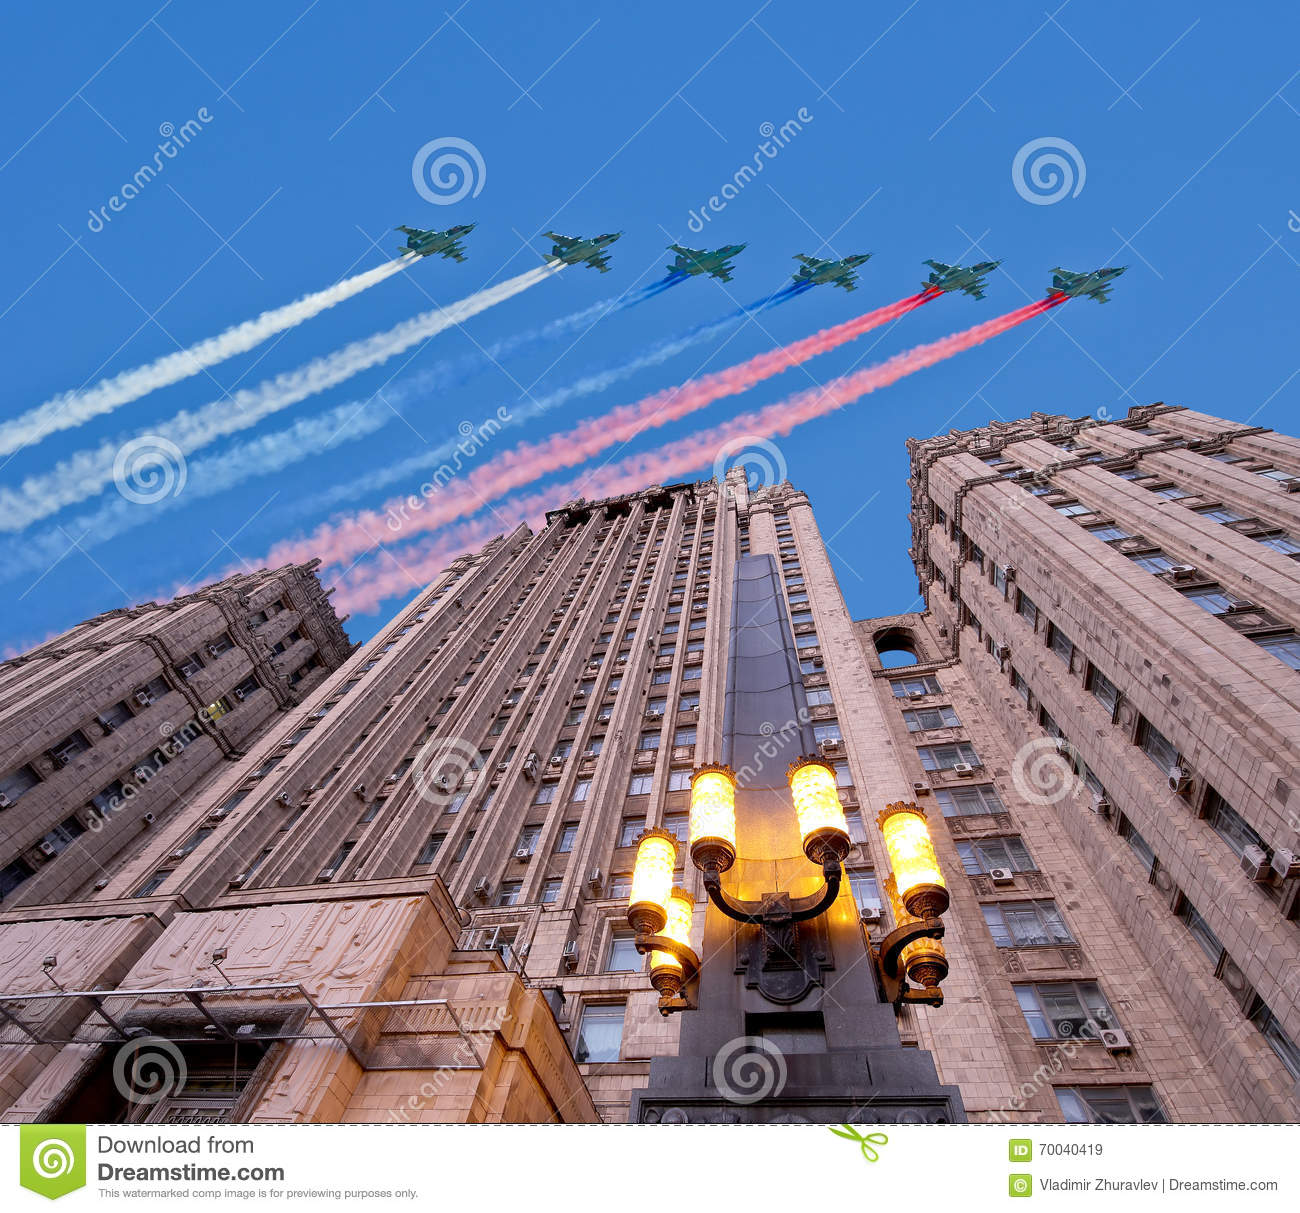 Ministry of Foreign Affairs of the Russian Federation and Russian military aircrafts fly in formation, Moscow, Russia